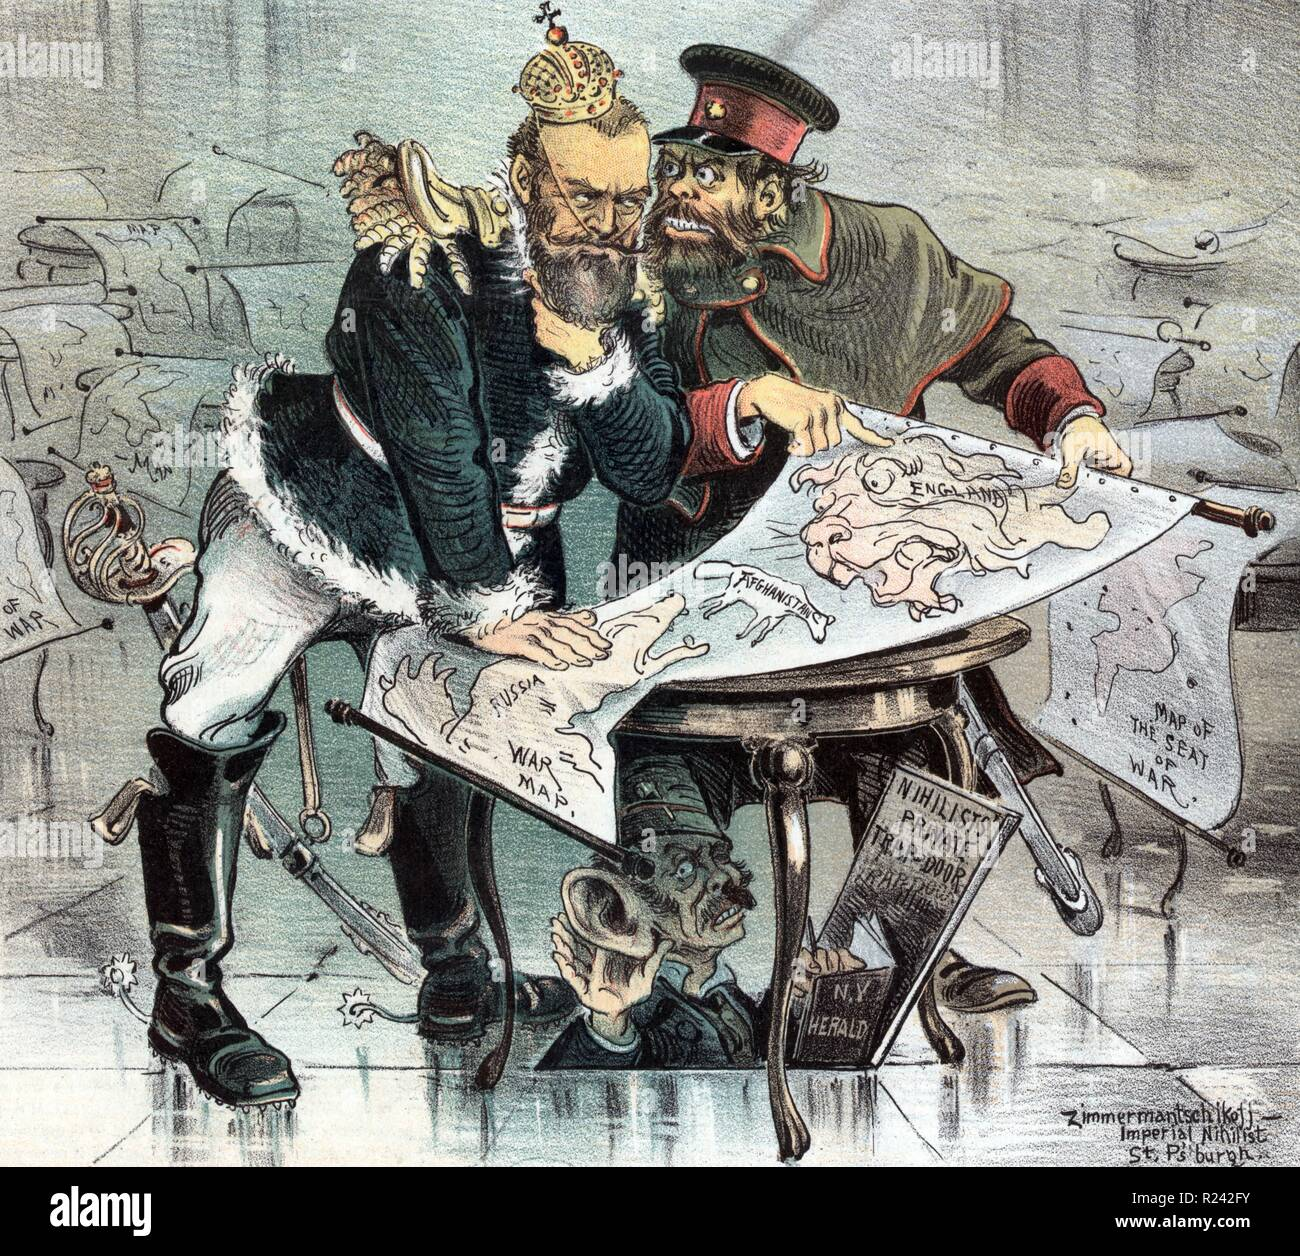 Nicholas II and General Obruchev looking over a 'War Map' with 'Russia' on one side, 'England' on the other, and 'Afghanistan' between them; beneath the table, having come through a trap door, is 'the Herald's Special Correspondent'. Dated 1885 - Stock Image